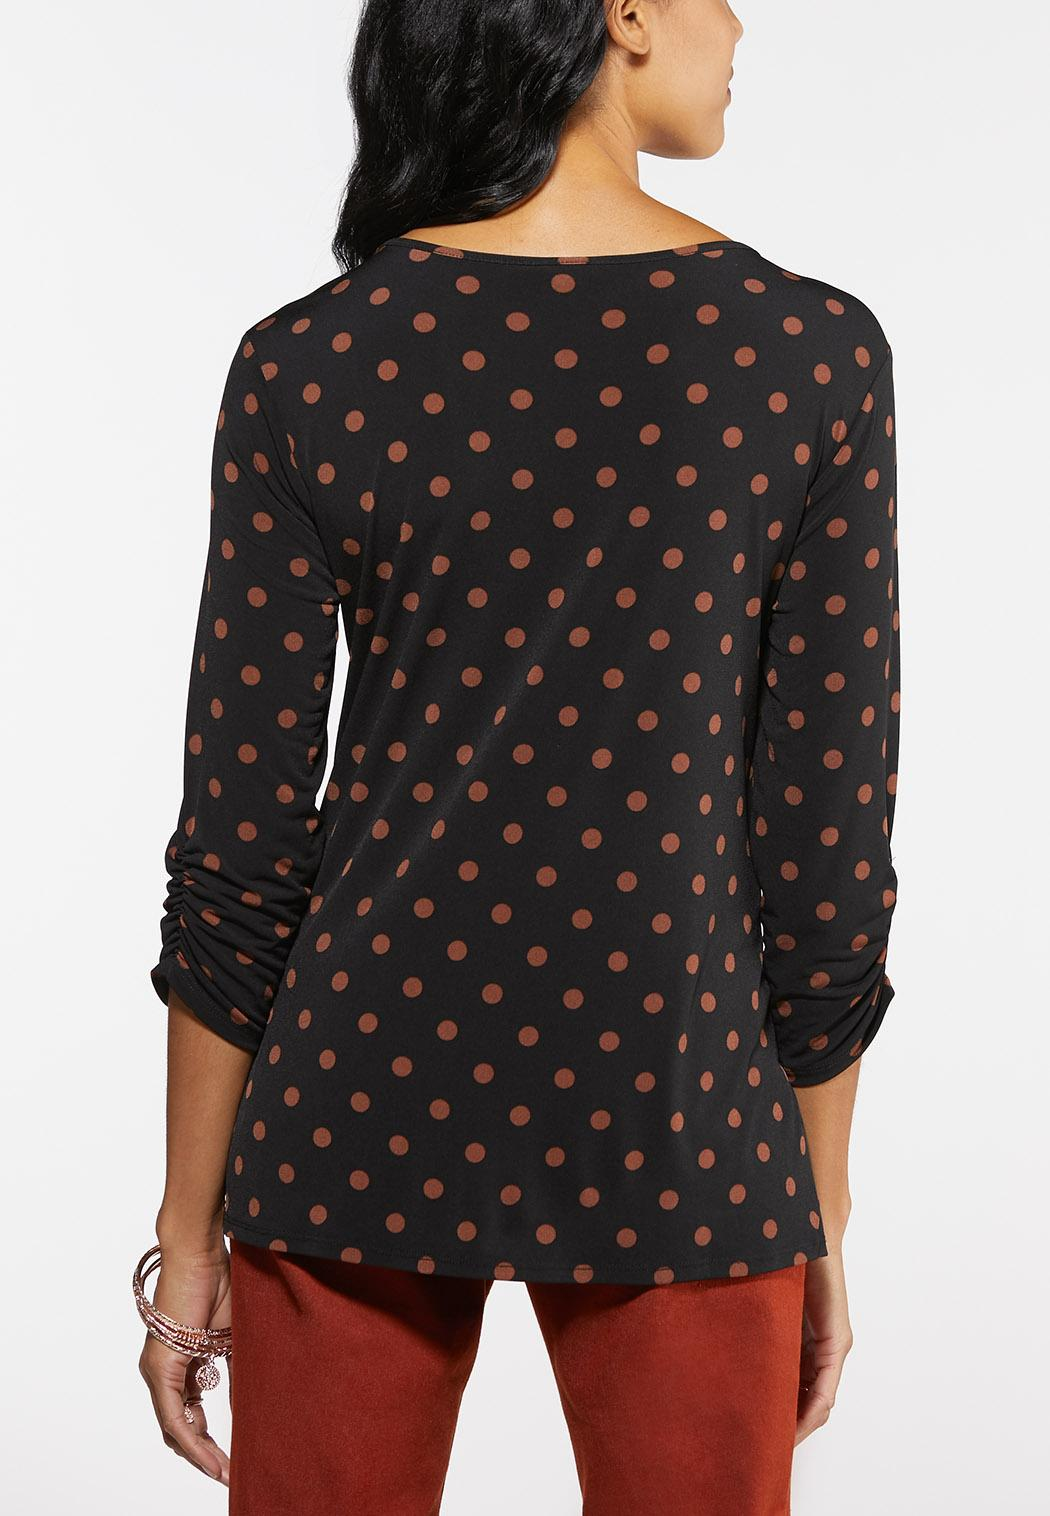 Dotted Buckle Cinched Top (Item #43964411)